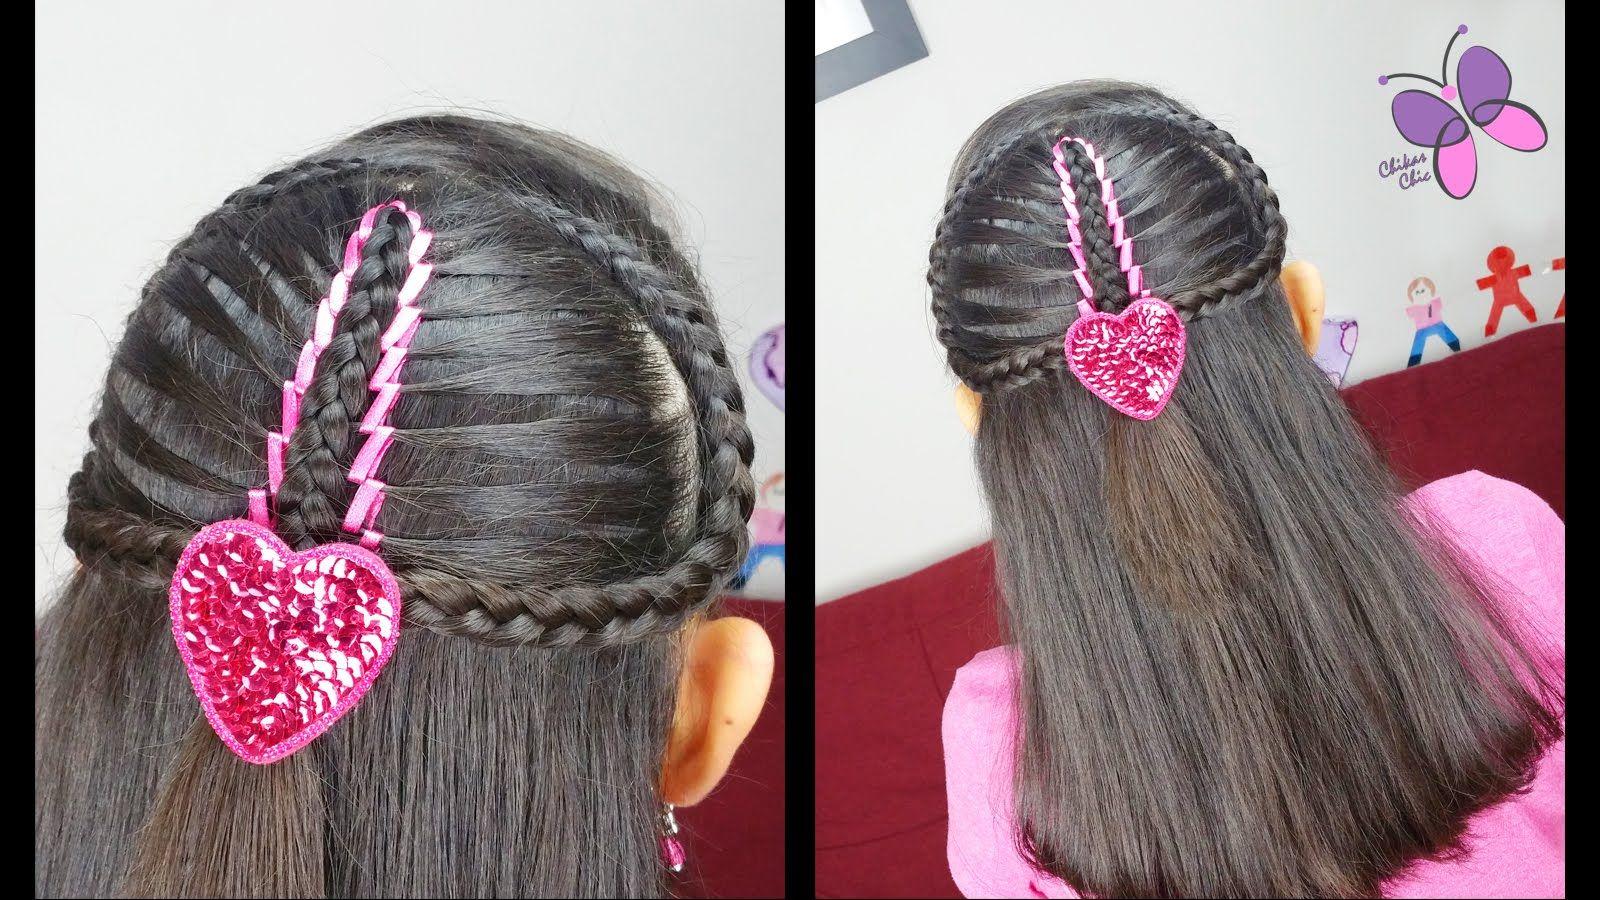 Unique Hair Styles: Cute Girly Hairstyles